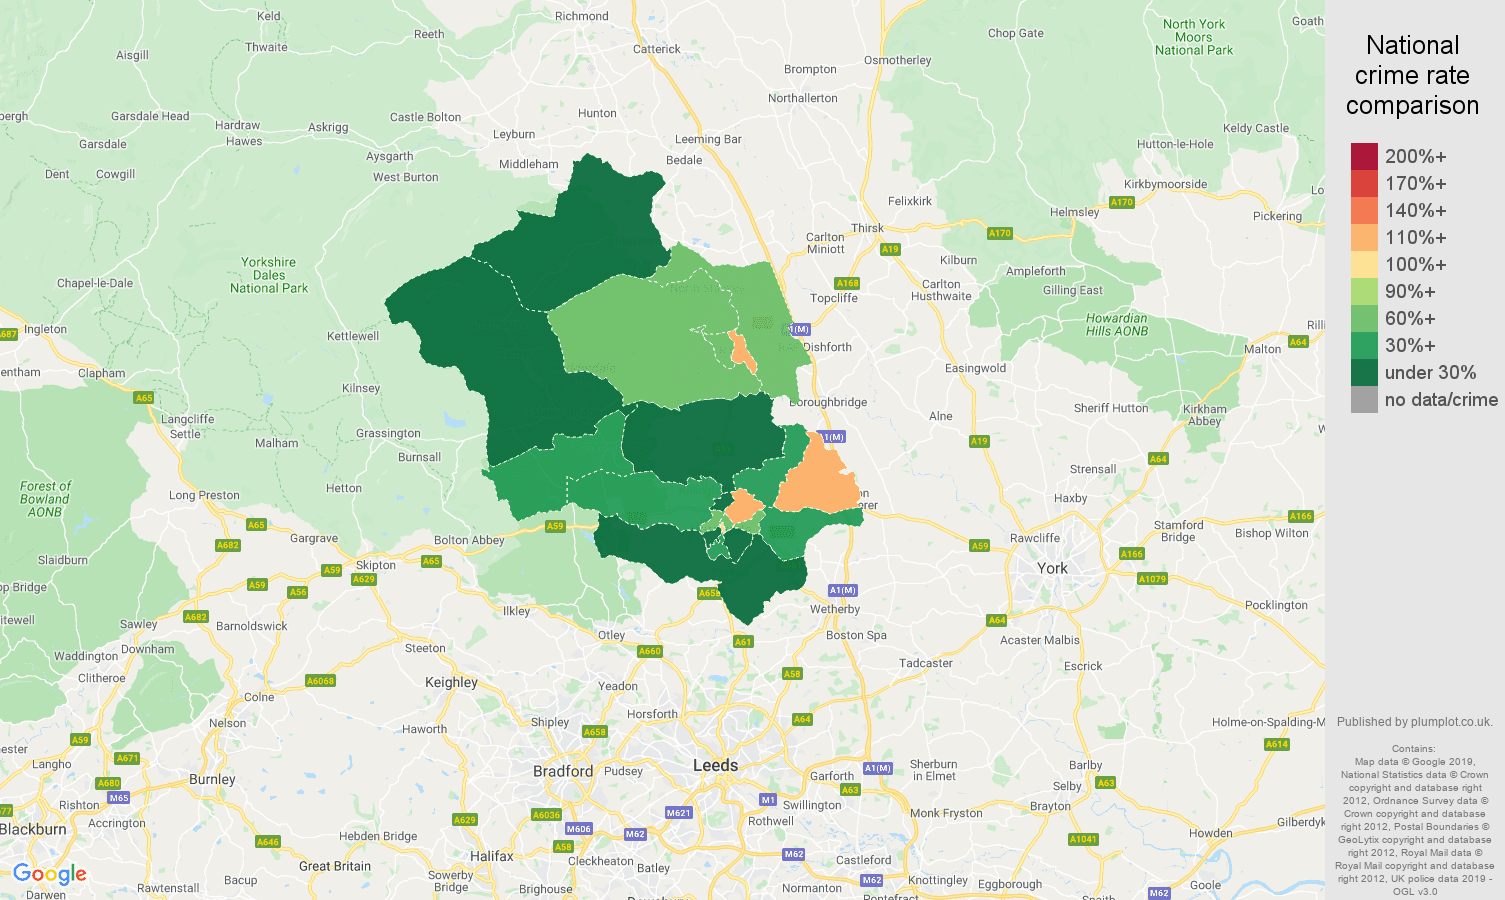 Harrogate other crime rate comparison map